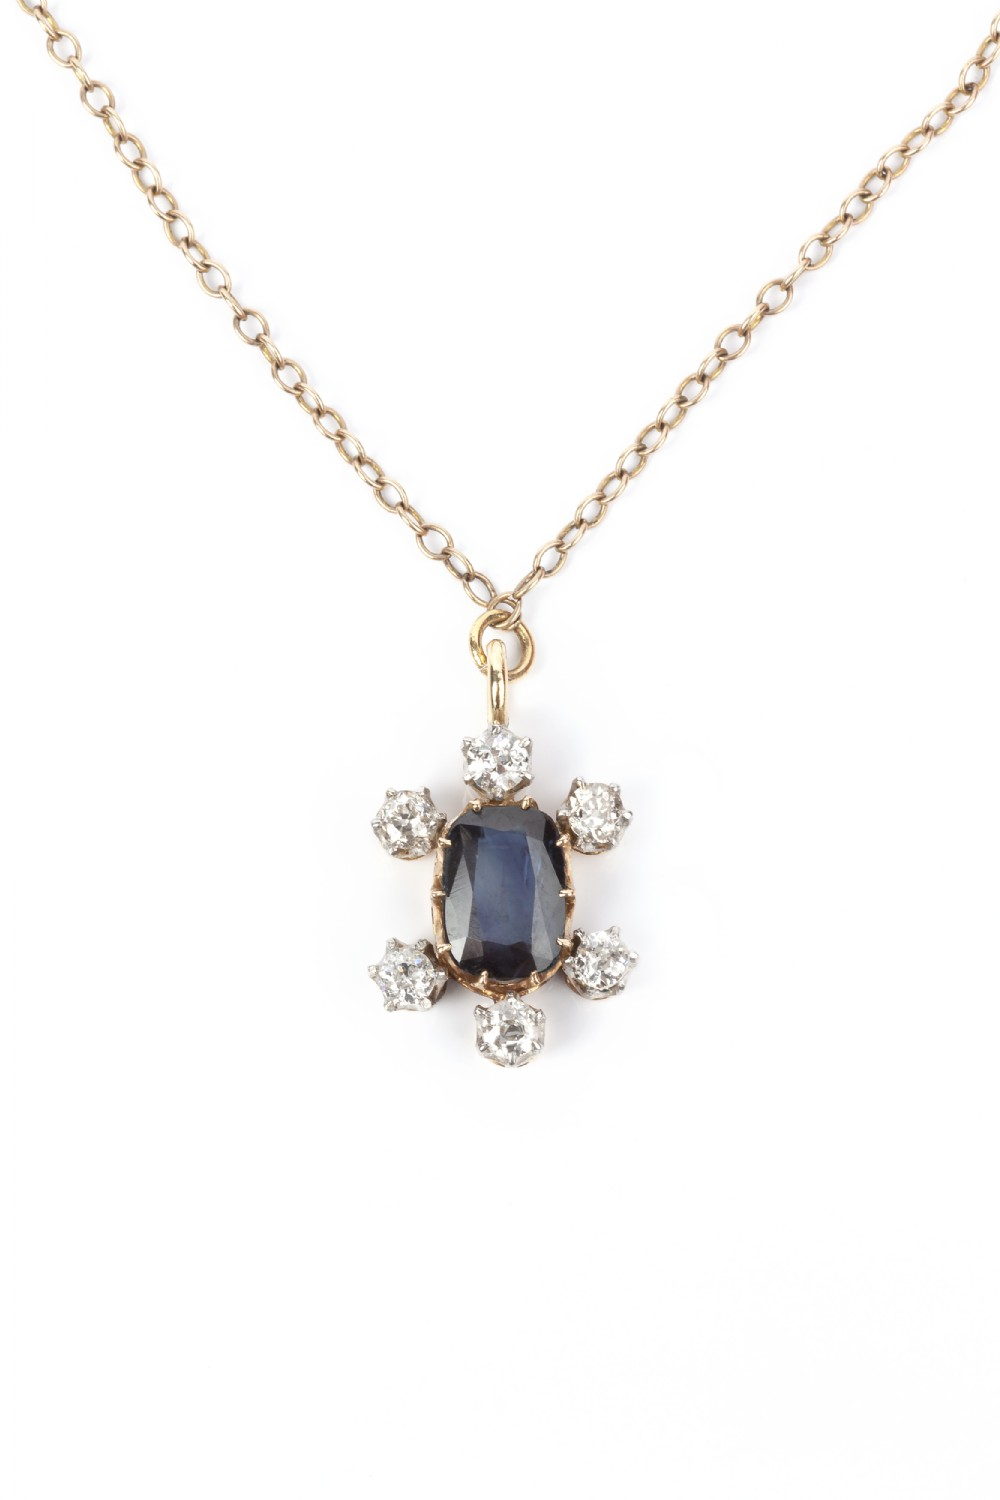 a natural unheated sapphire and old cut 06ct diamond pendant